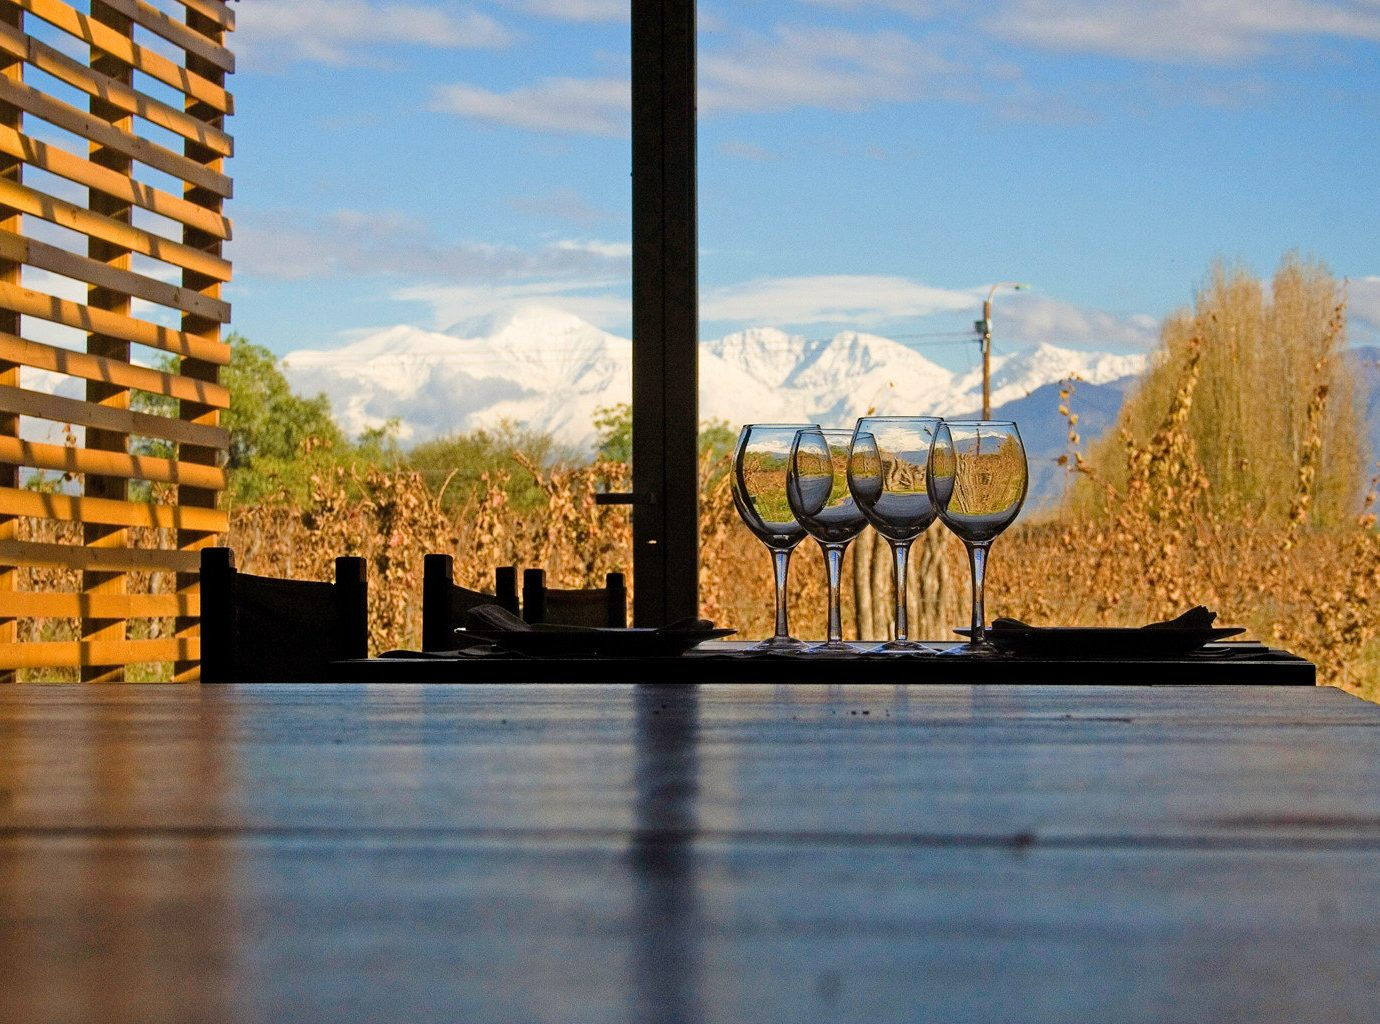 Country Drink Mountains Scenic views Trip Ideas Vineyard Wine-Tasting sky reflection outdoor landmark wood evening sunlight cityscape